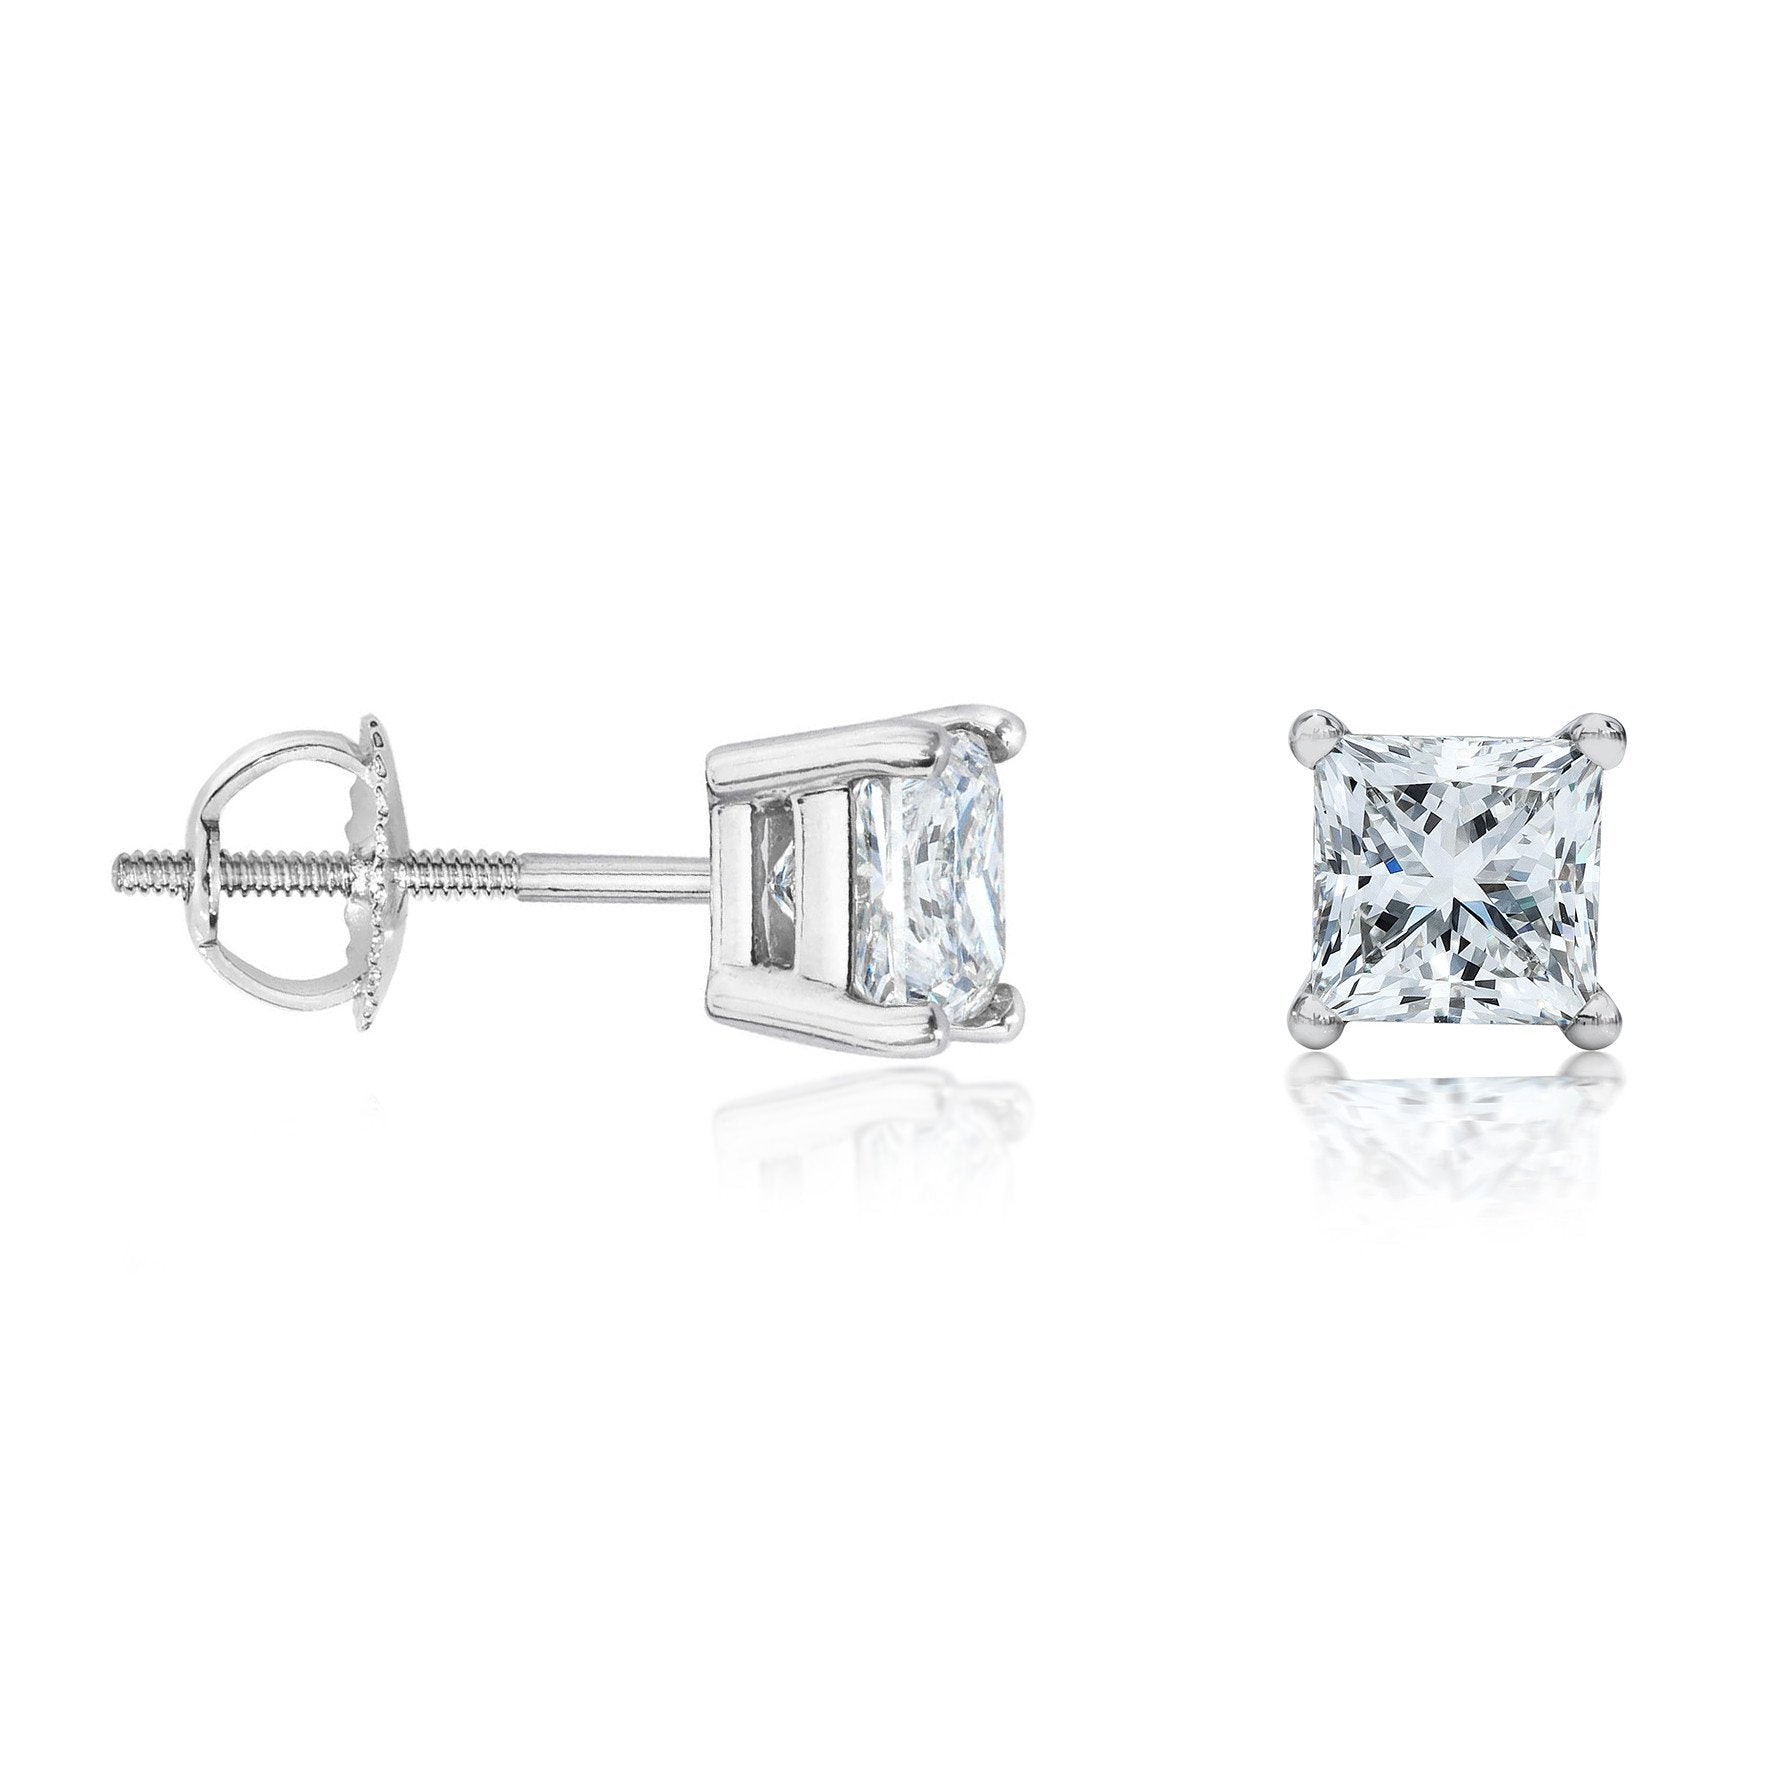 tw earrings square in i princess ctw white diamond stud h cut gold carat